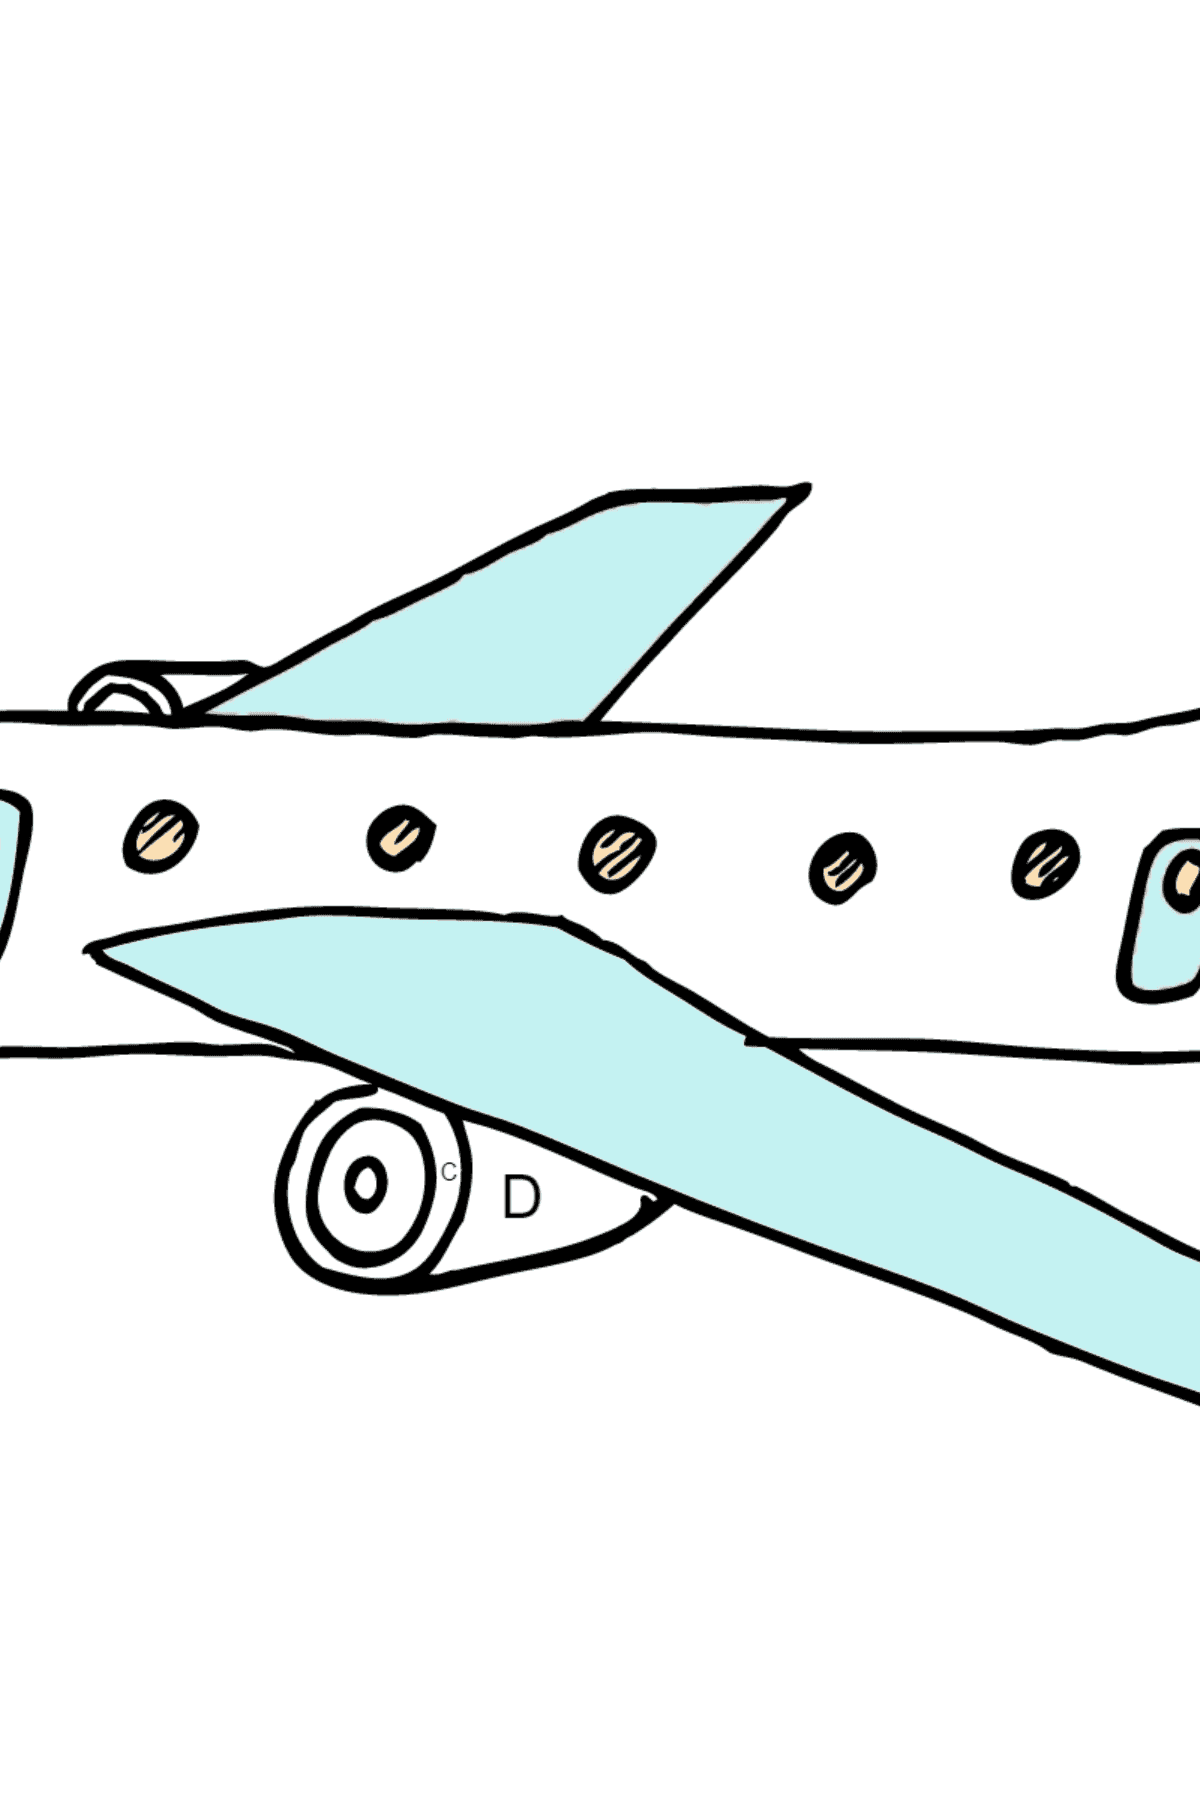 Coloring Page - A Commercial Jet - Coloring by Letters for Children